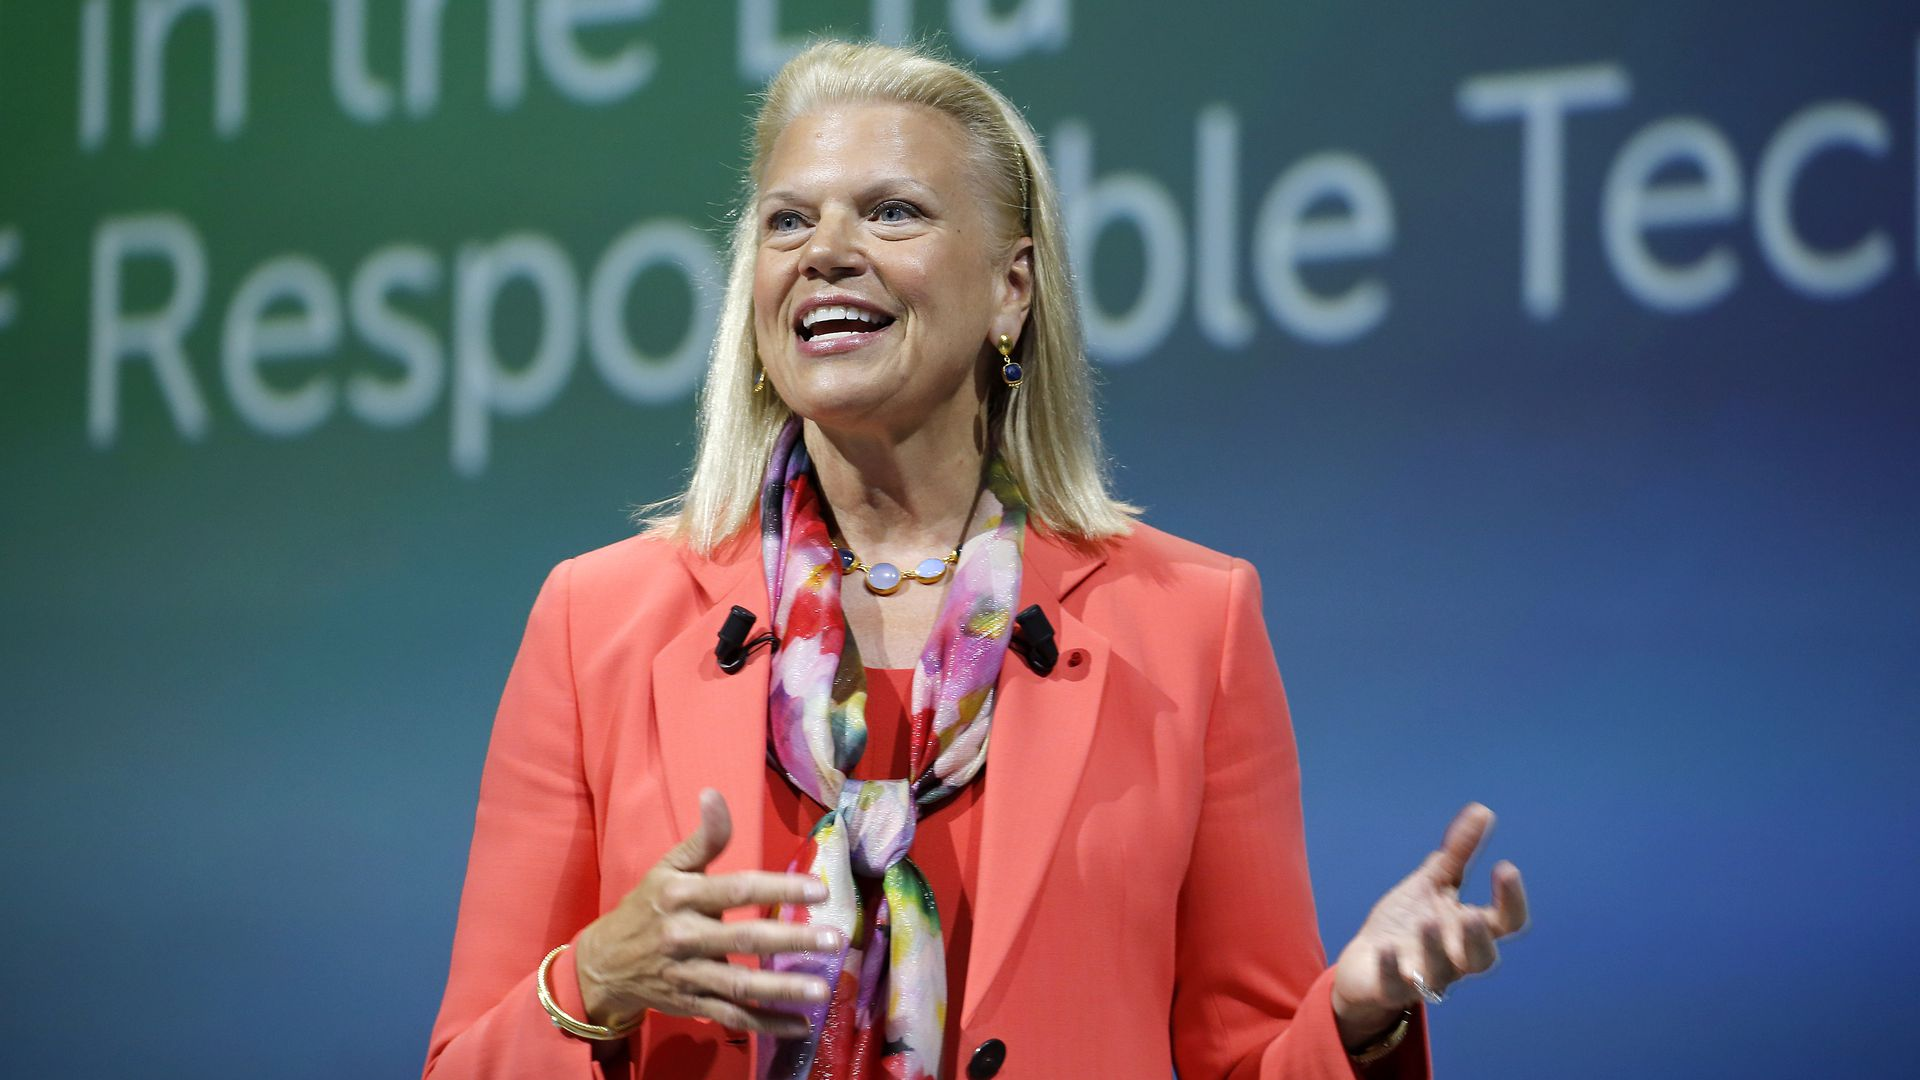 Ginni Rometty is a red jacket presents on stage